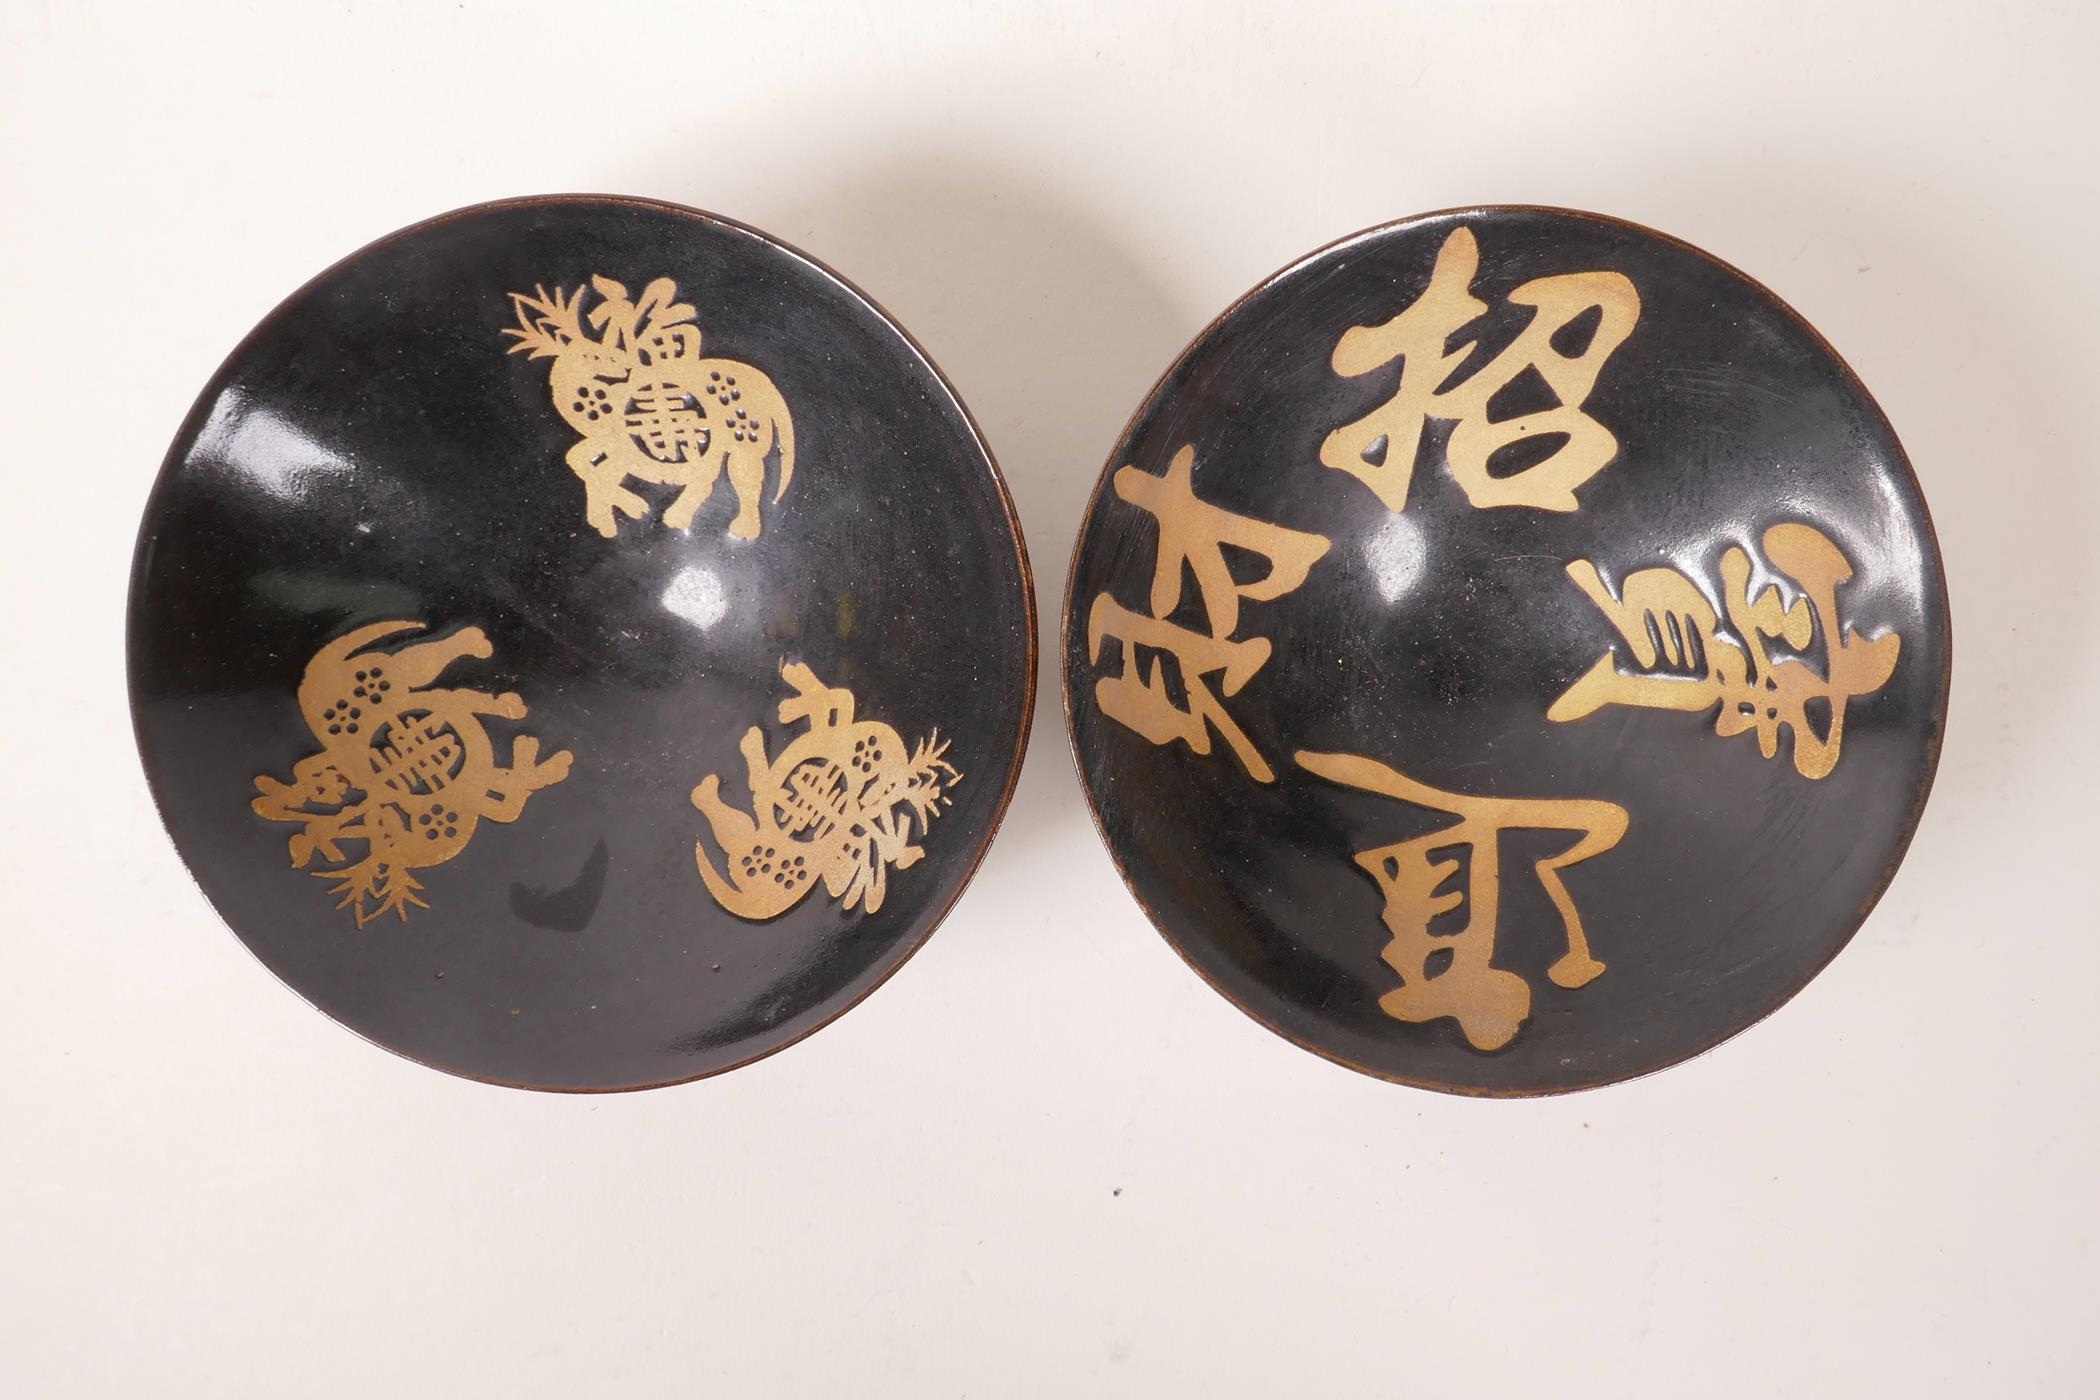 Lot 55 - A pair of Chinese Cizhou pottery bowls with mythical creature and auspicious character decoration,